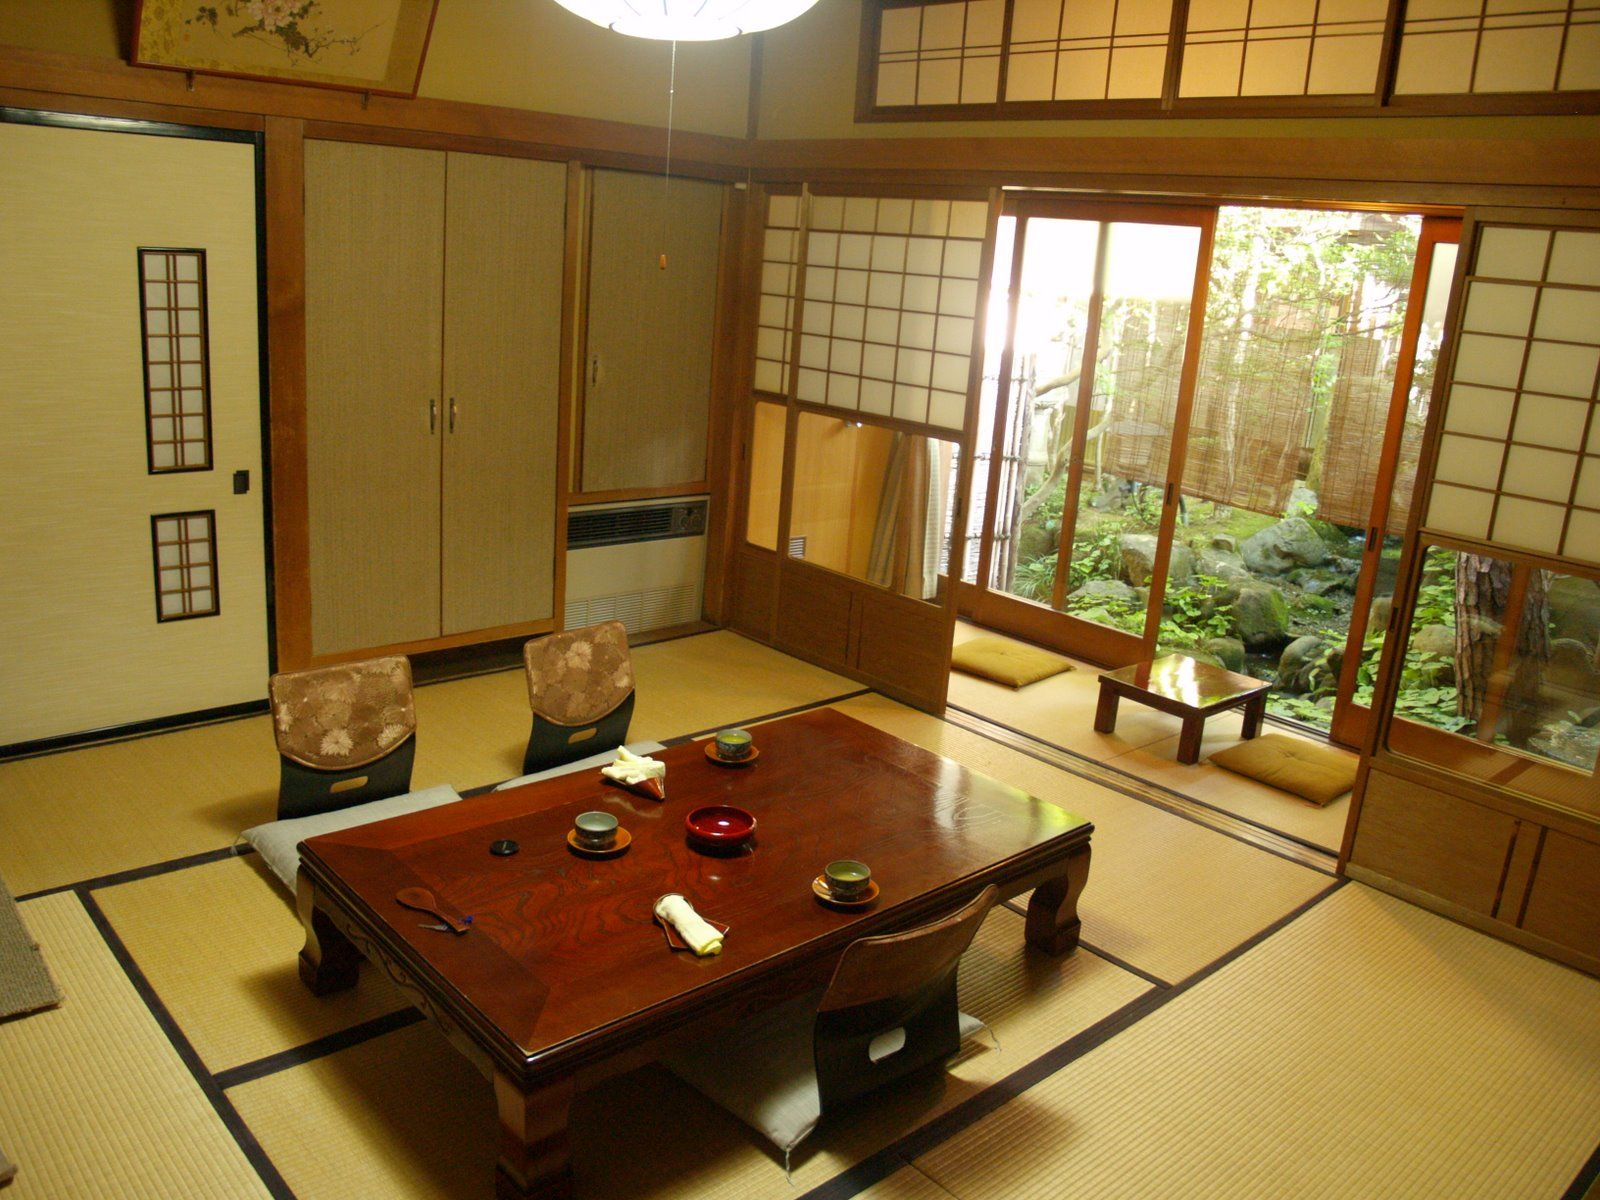 Cuarto con decoracion japones decoracion pinterest for Decoracion casa estilo japones